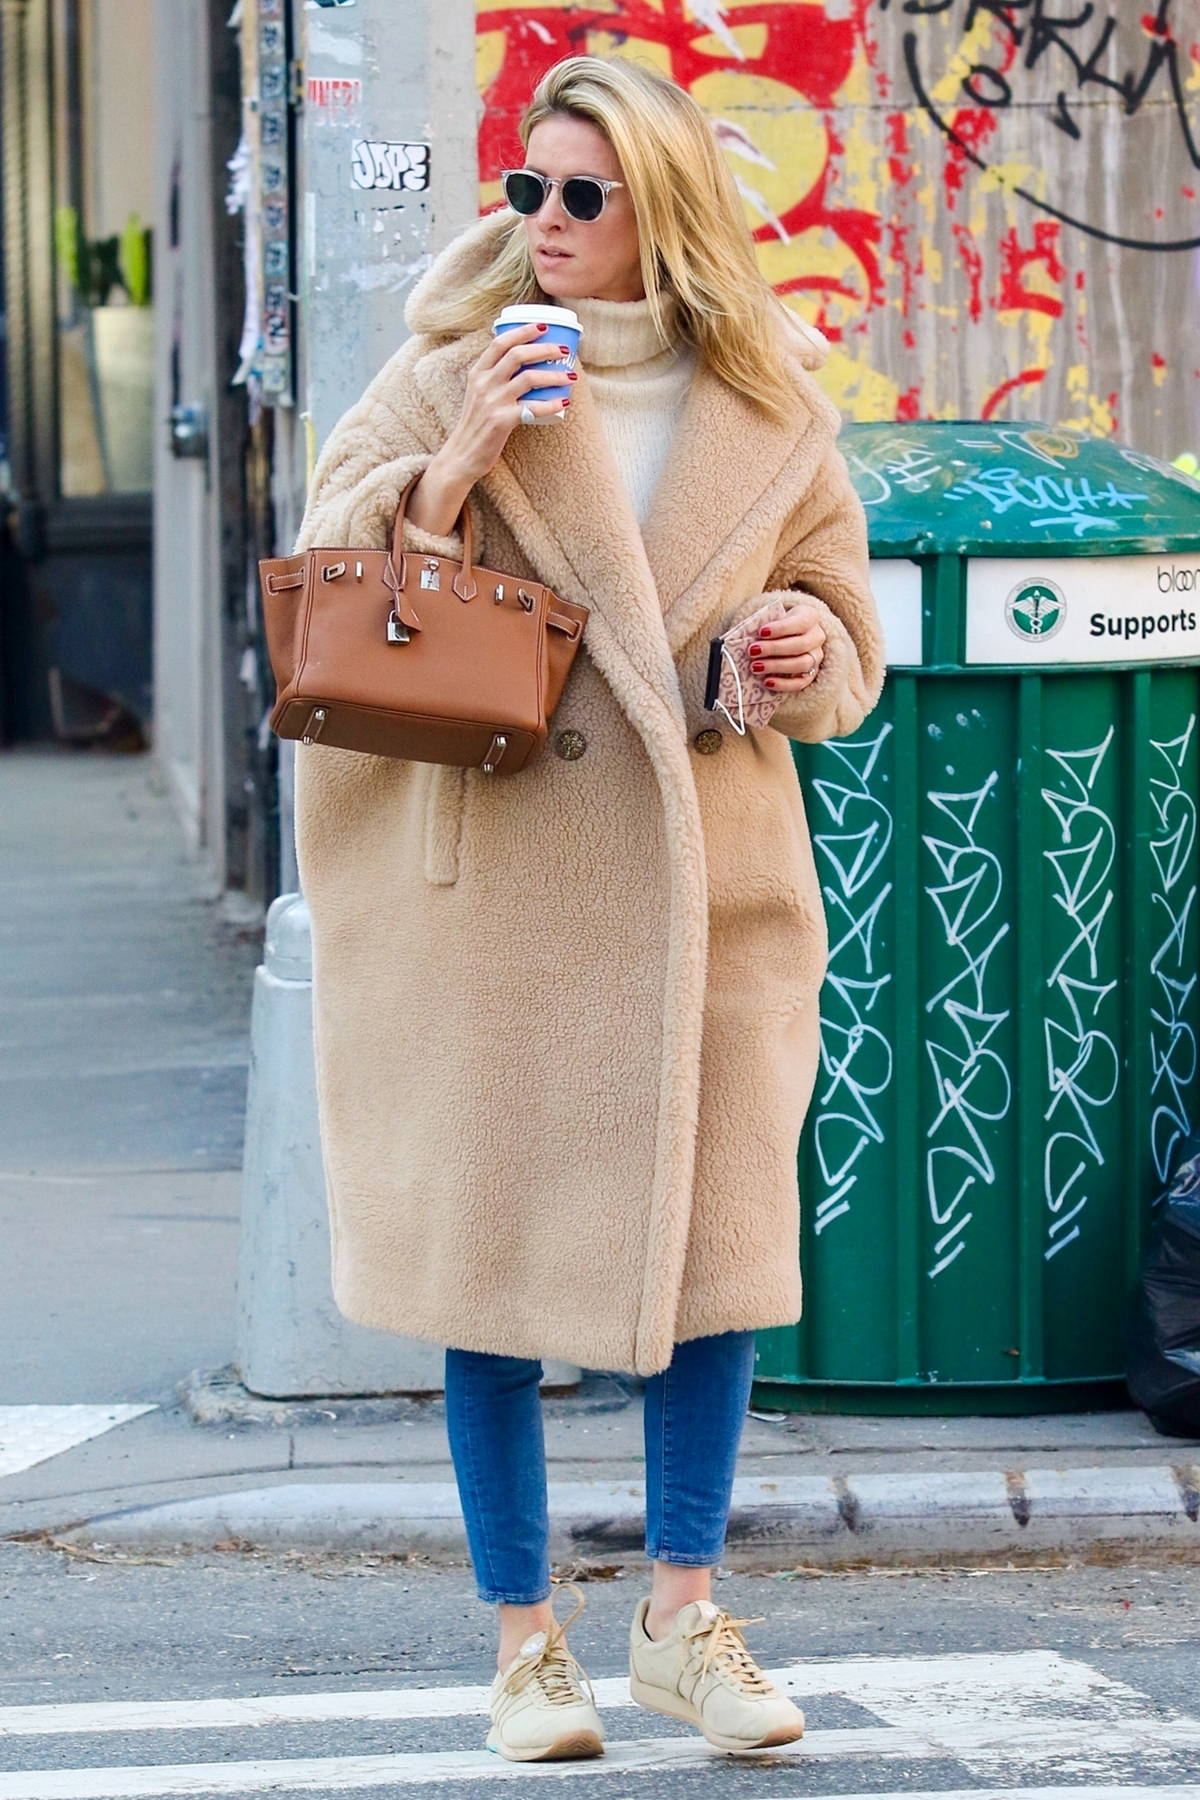 Nicky Hilton looks stylish in a brown teddy coat while making a coffee run in Downtown Manhattan, New York City